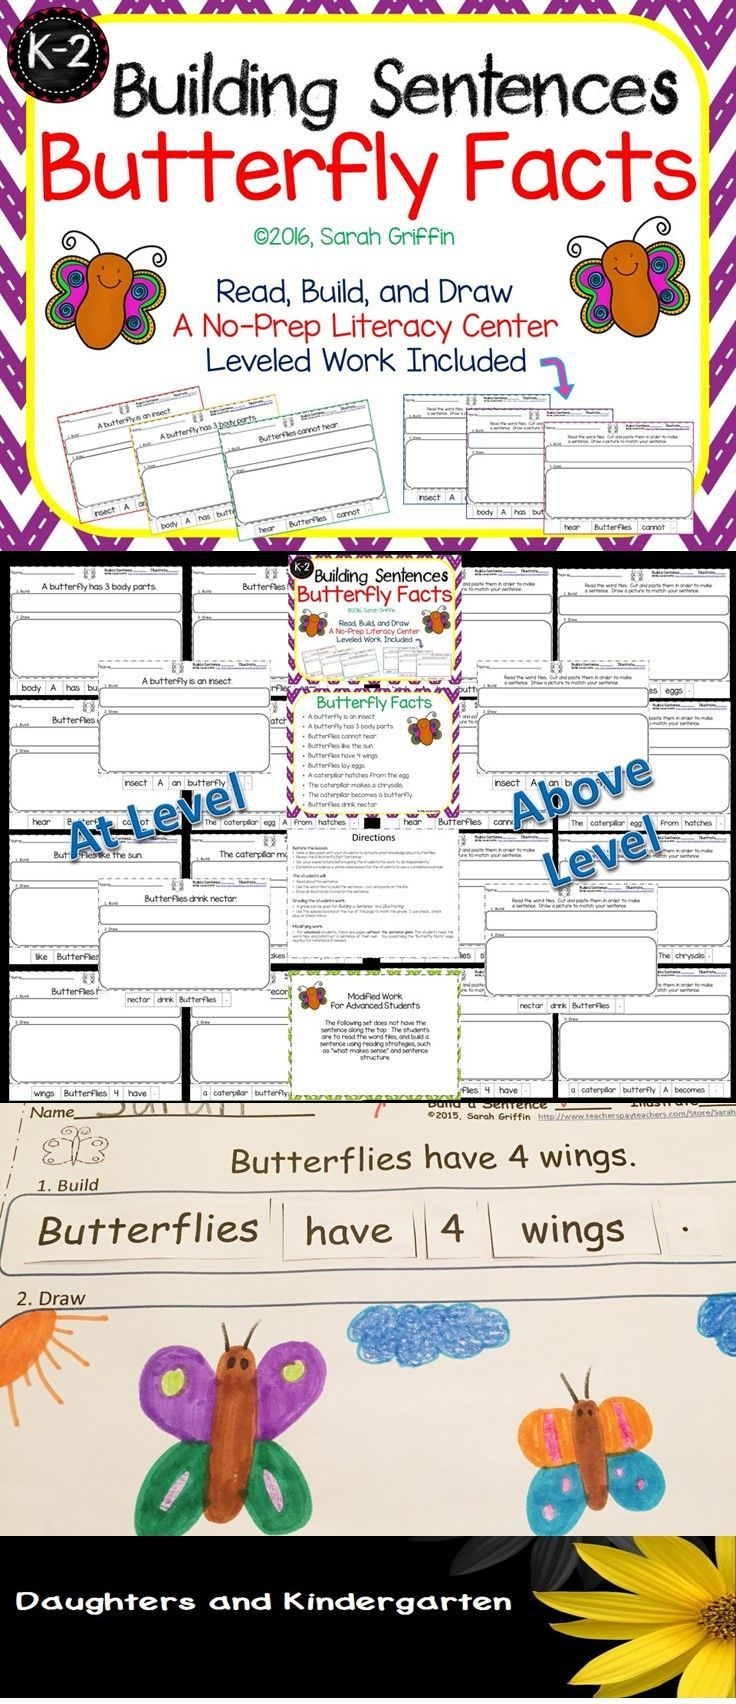 K, 1st, and 2nd grade writing and science, non-fiction, center. Building sentences about 10 butterfly facts.  Cut and paste worksheets and leveled work included.